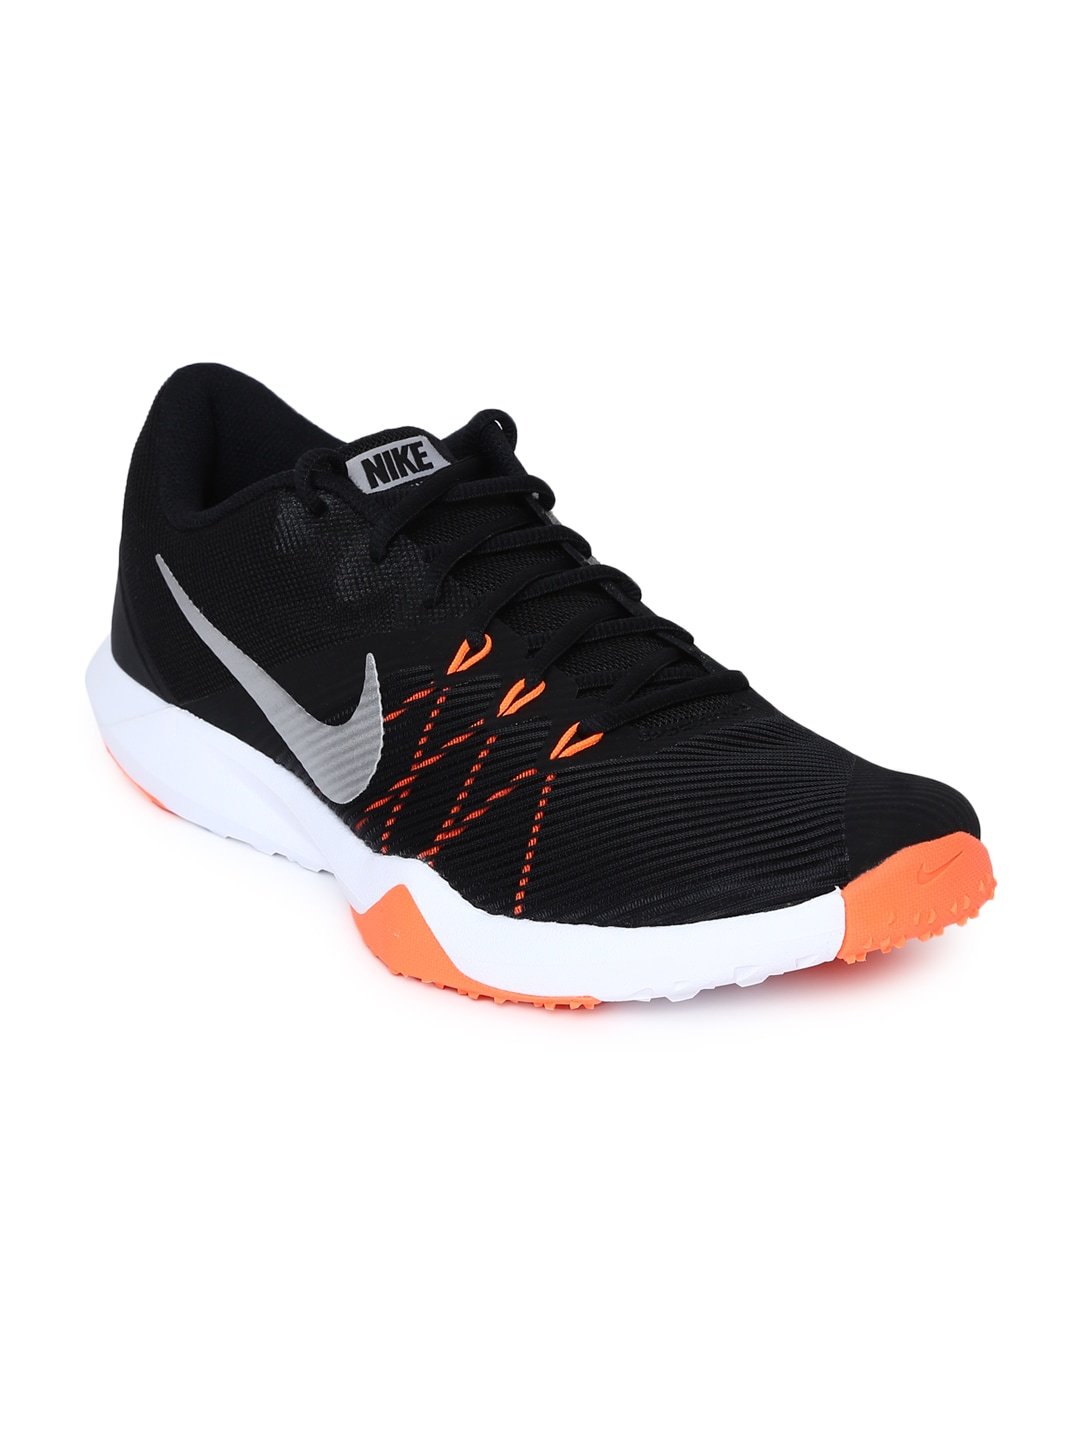 b55afe666fd2 Nike Shoes - Buy Nike Shoes for Men